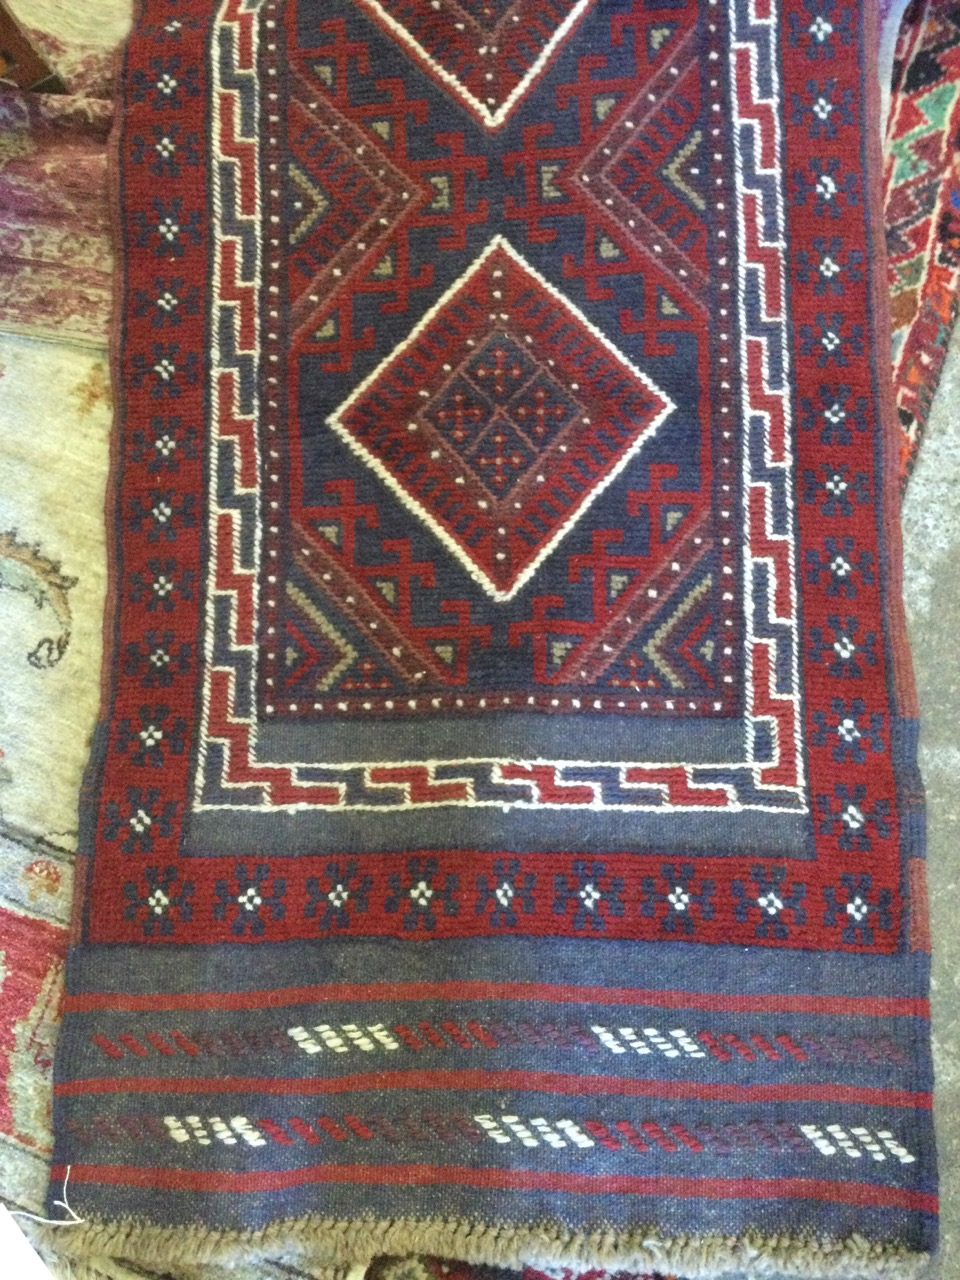 A Turkish runner woven with red field of four diamond shaped medallions with blue hooked borders, - Image 3 of 3